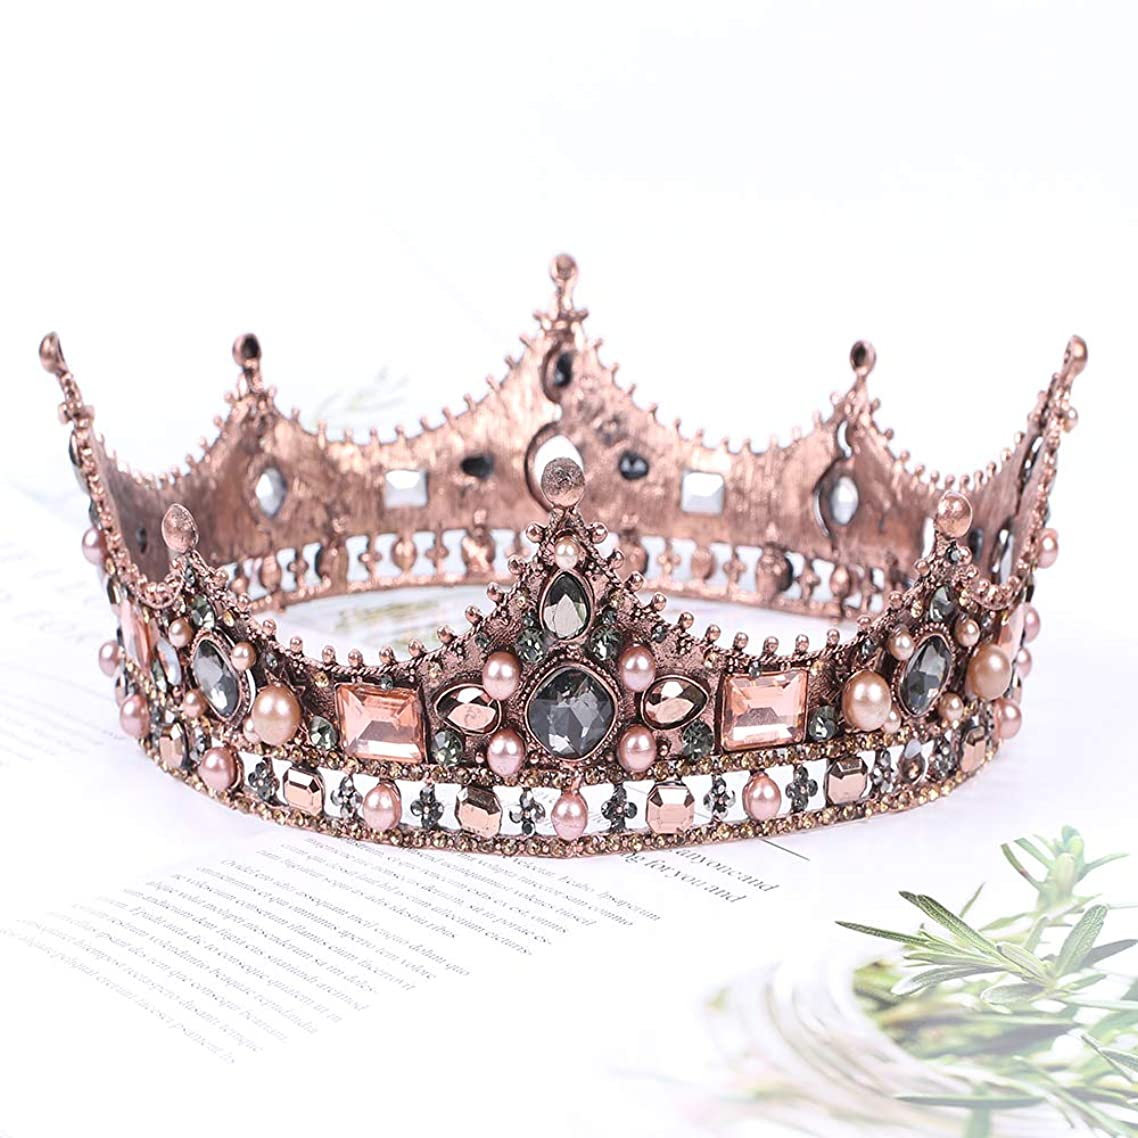 Vinsco Baroque Crown Vintage Round Full Size Tiara Luxury Retro Headband Crystal Rhinestone Beads Hair Jewelry Decor for Queen Women Ladies Girls Bridal Bride Princess Birthday Wedding Pageant Party